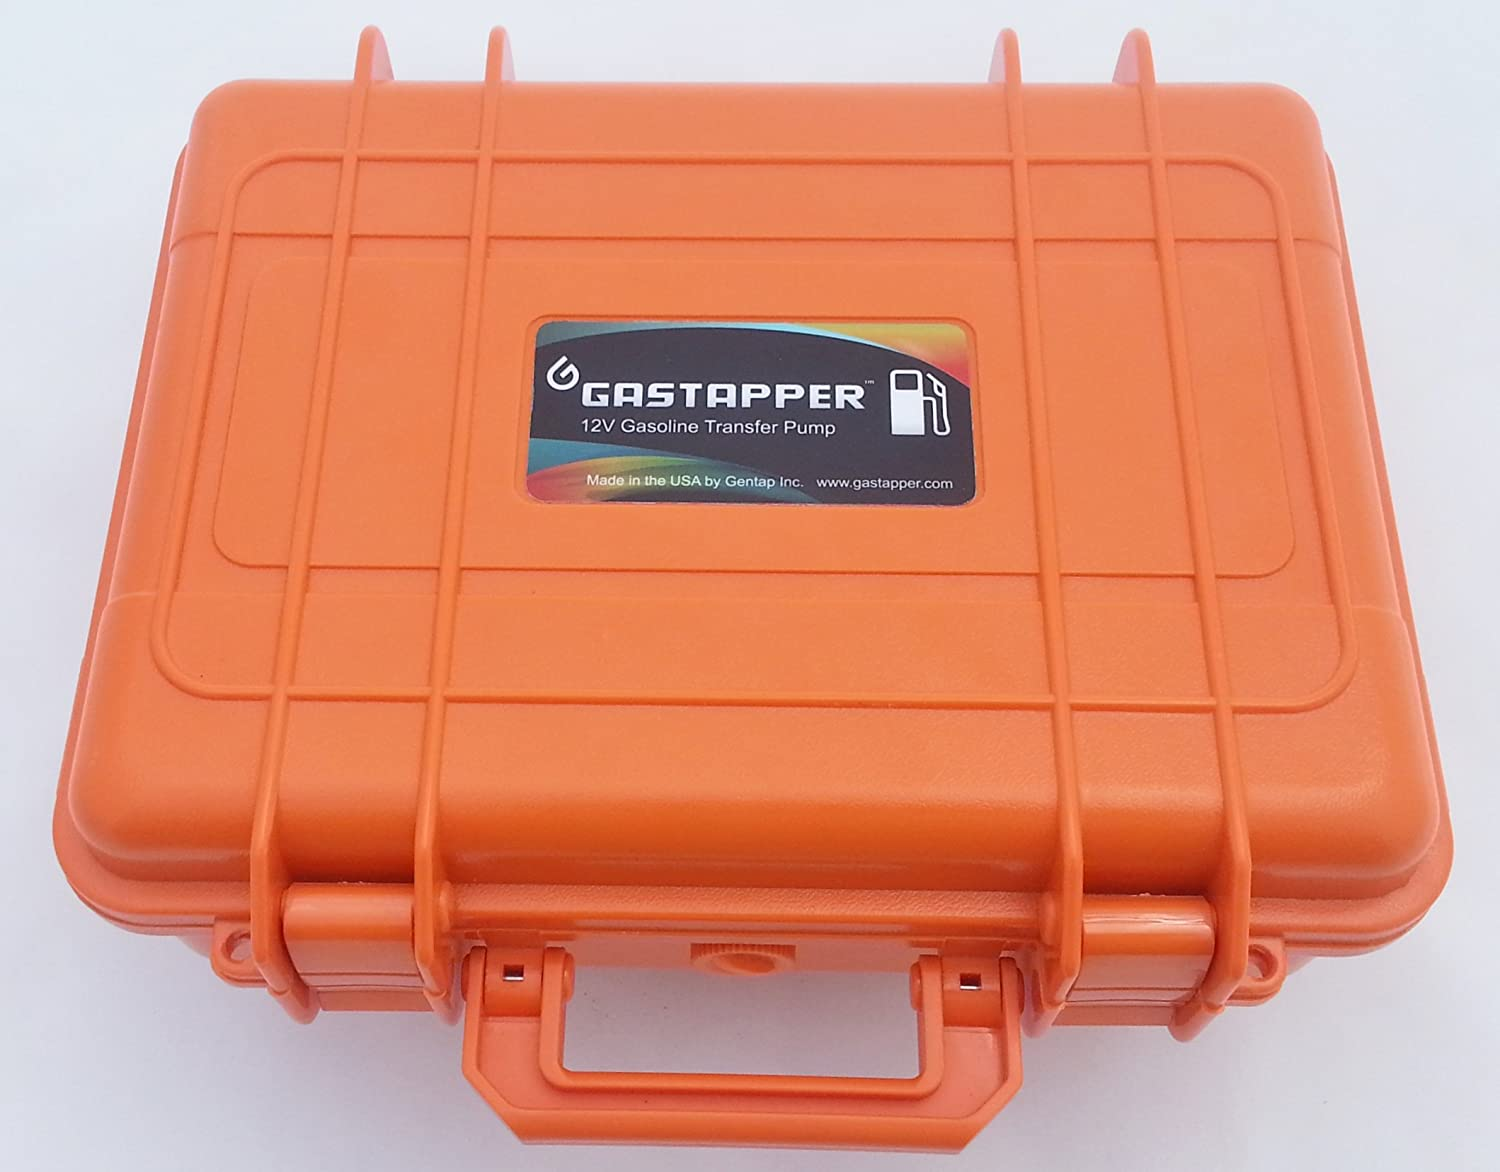 Gas Equipment Boats Diesel Click at top of This Page for Full Store GasTapper 12V Gasoline Transfer Pump//Siphon UTVs Vehicles